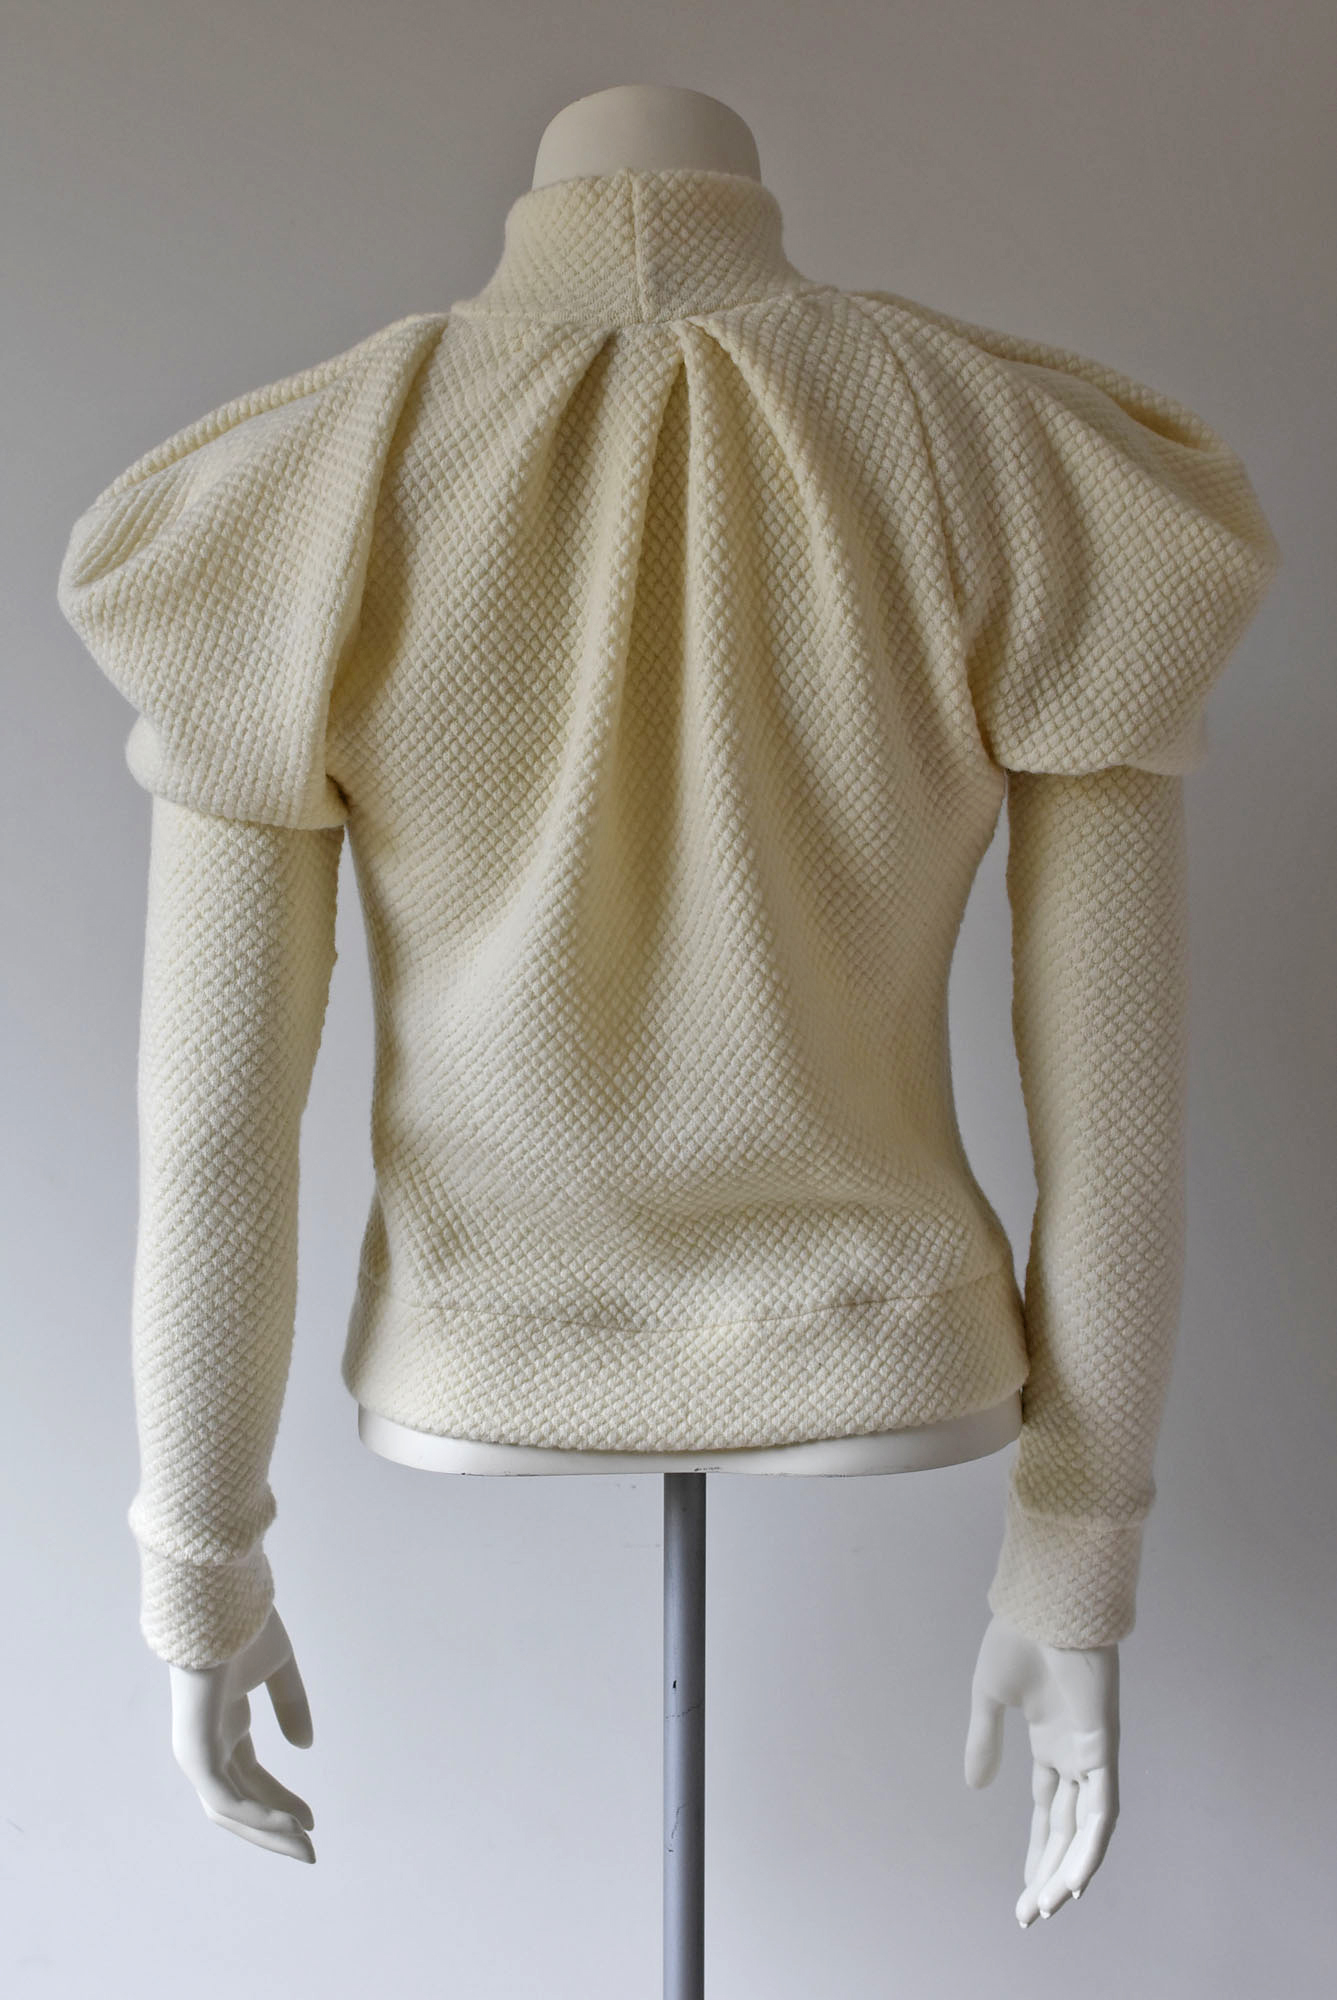 07 - MUSCLE-JUMPER turtle-neck